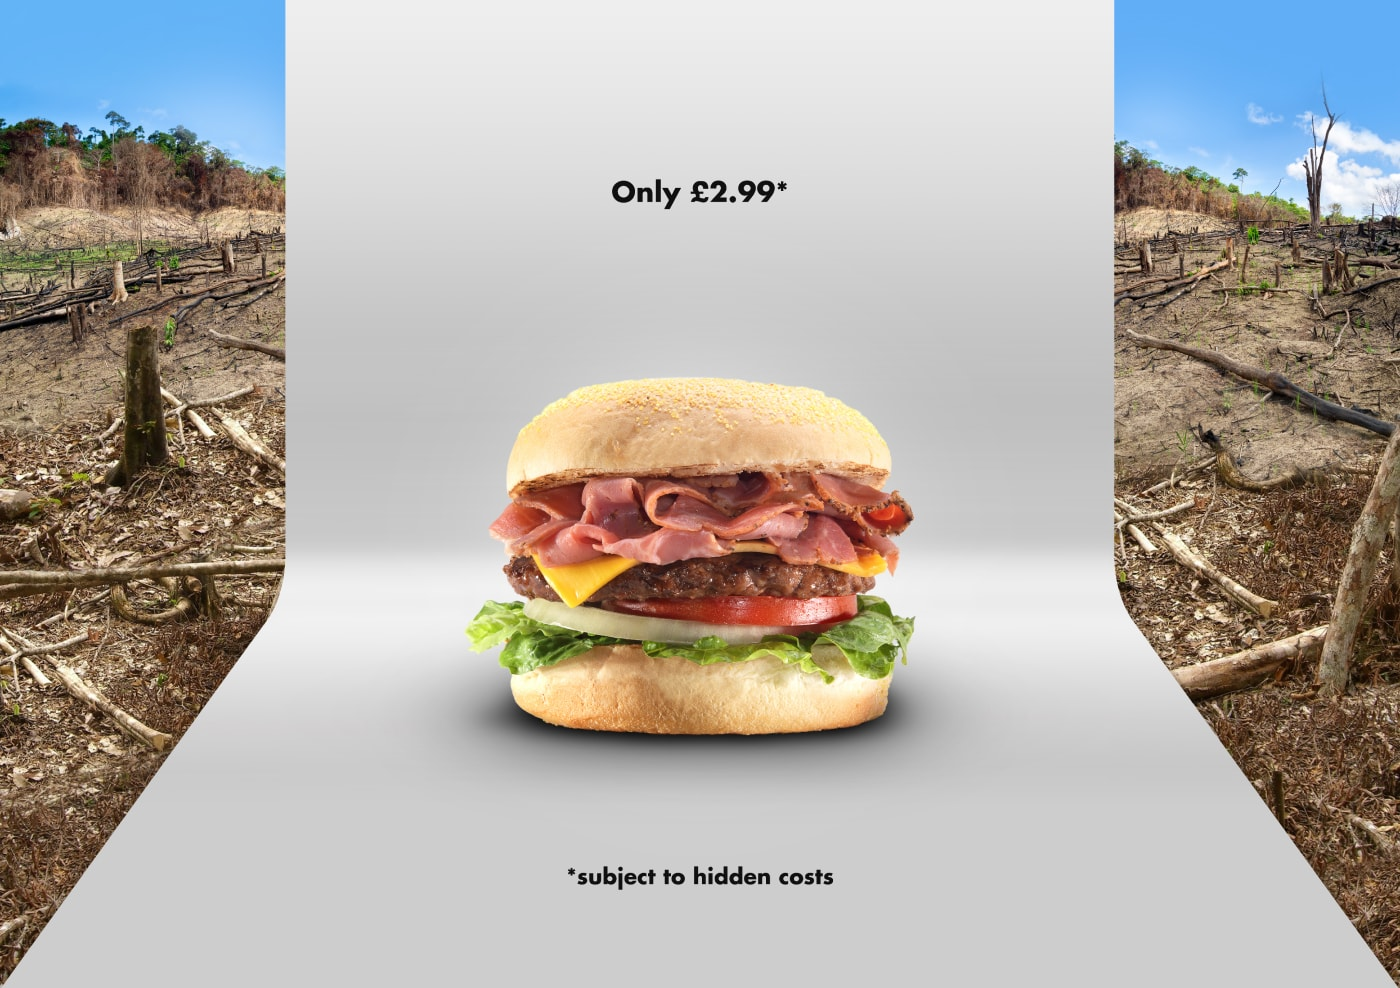 Burger in front of infinity wall, deforestation behind